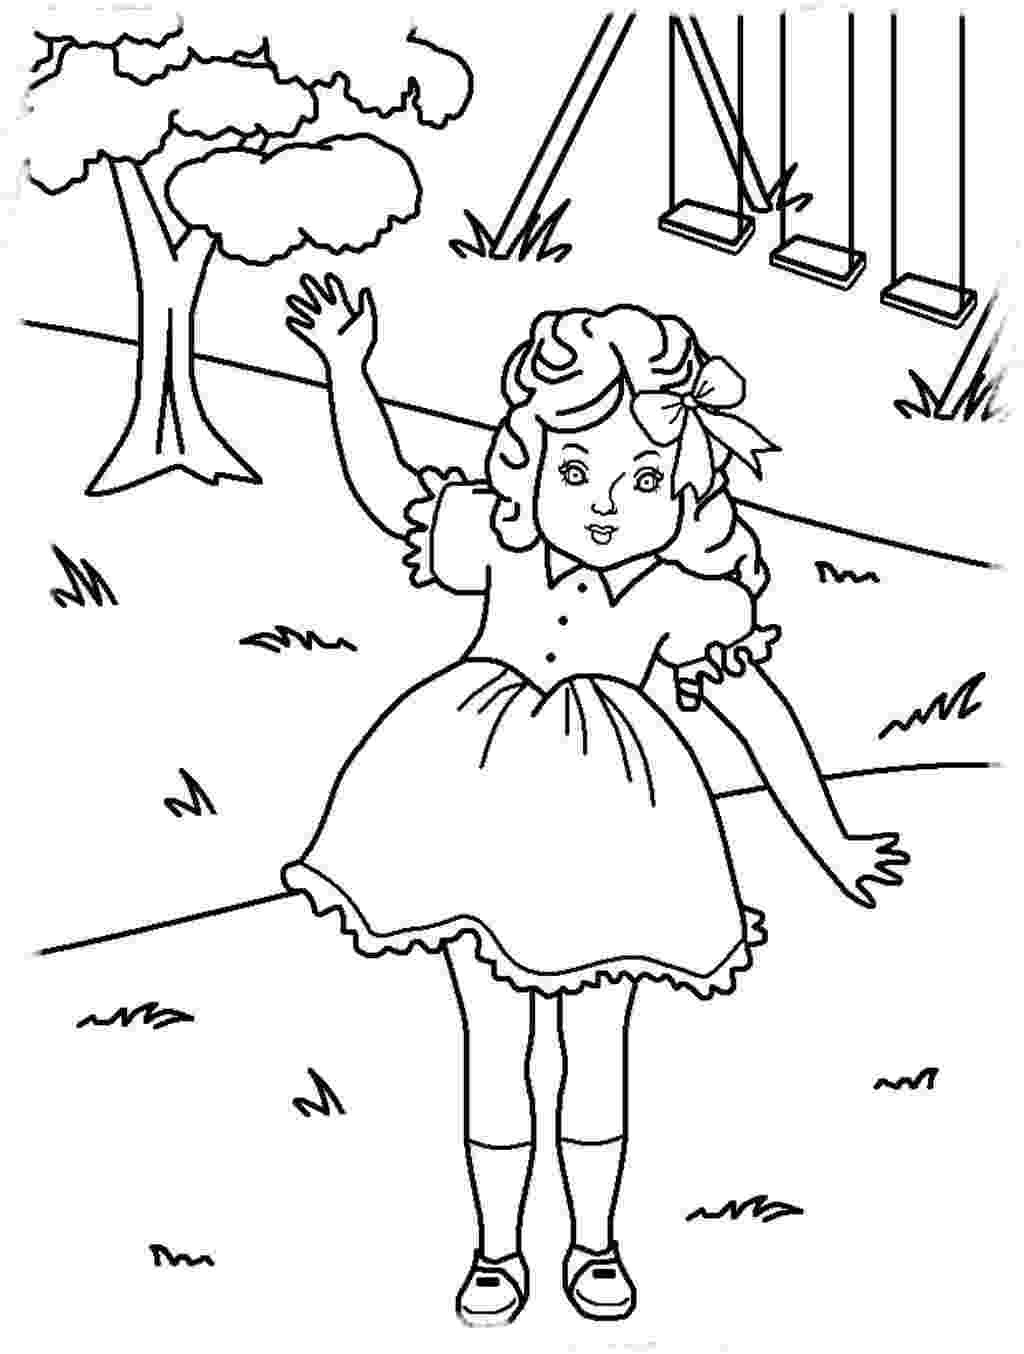 american girl coloring pages printable my american girl coloring pages small dolls in a big world pages printable american coloring girl